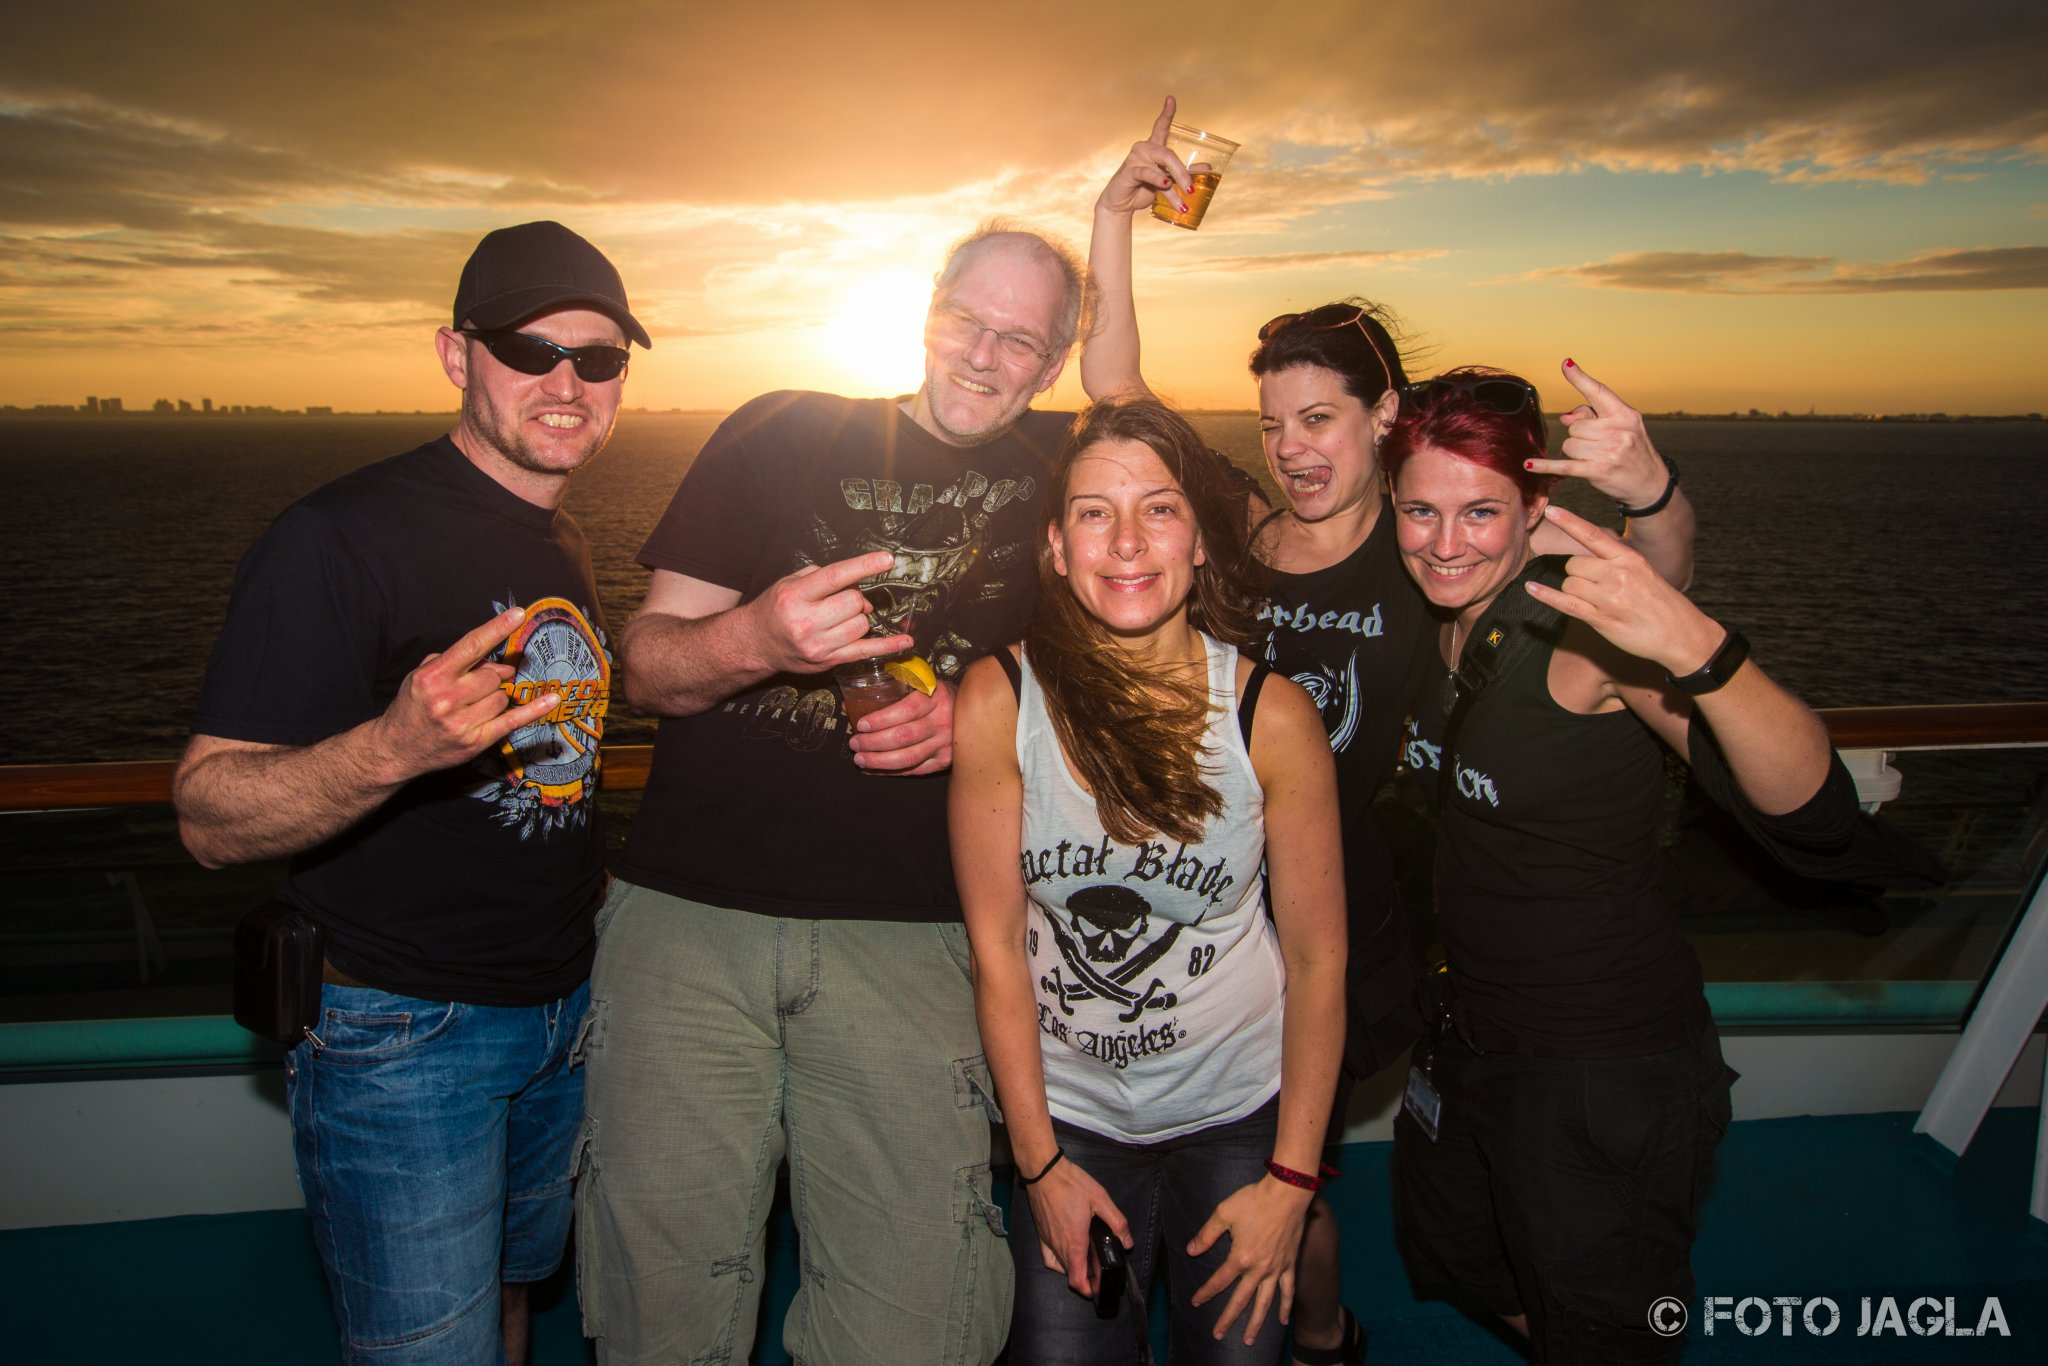 70000 Tons Of Metal 2017 Pooldeck-Impression bei Sonnenuntergang